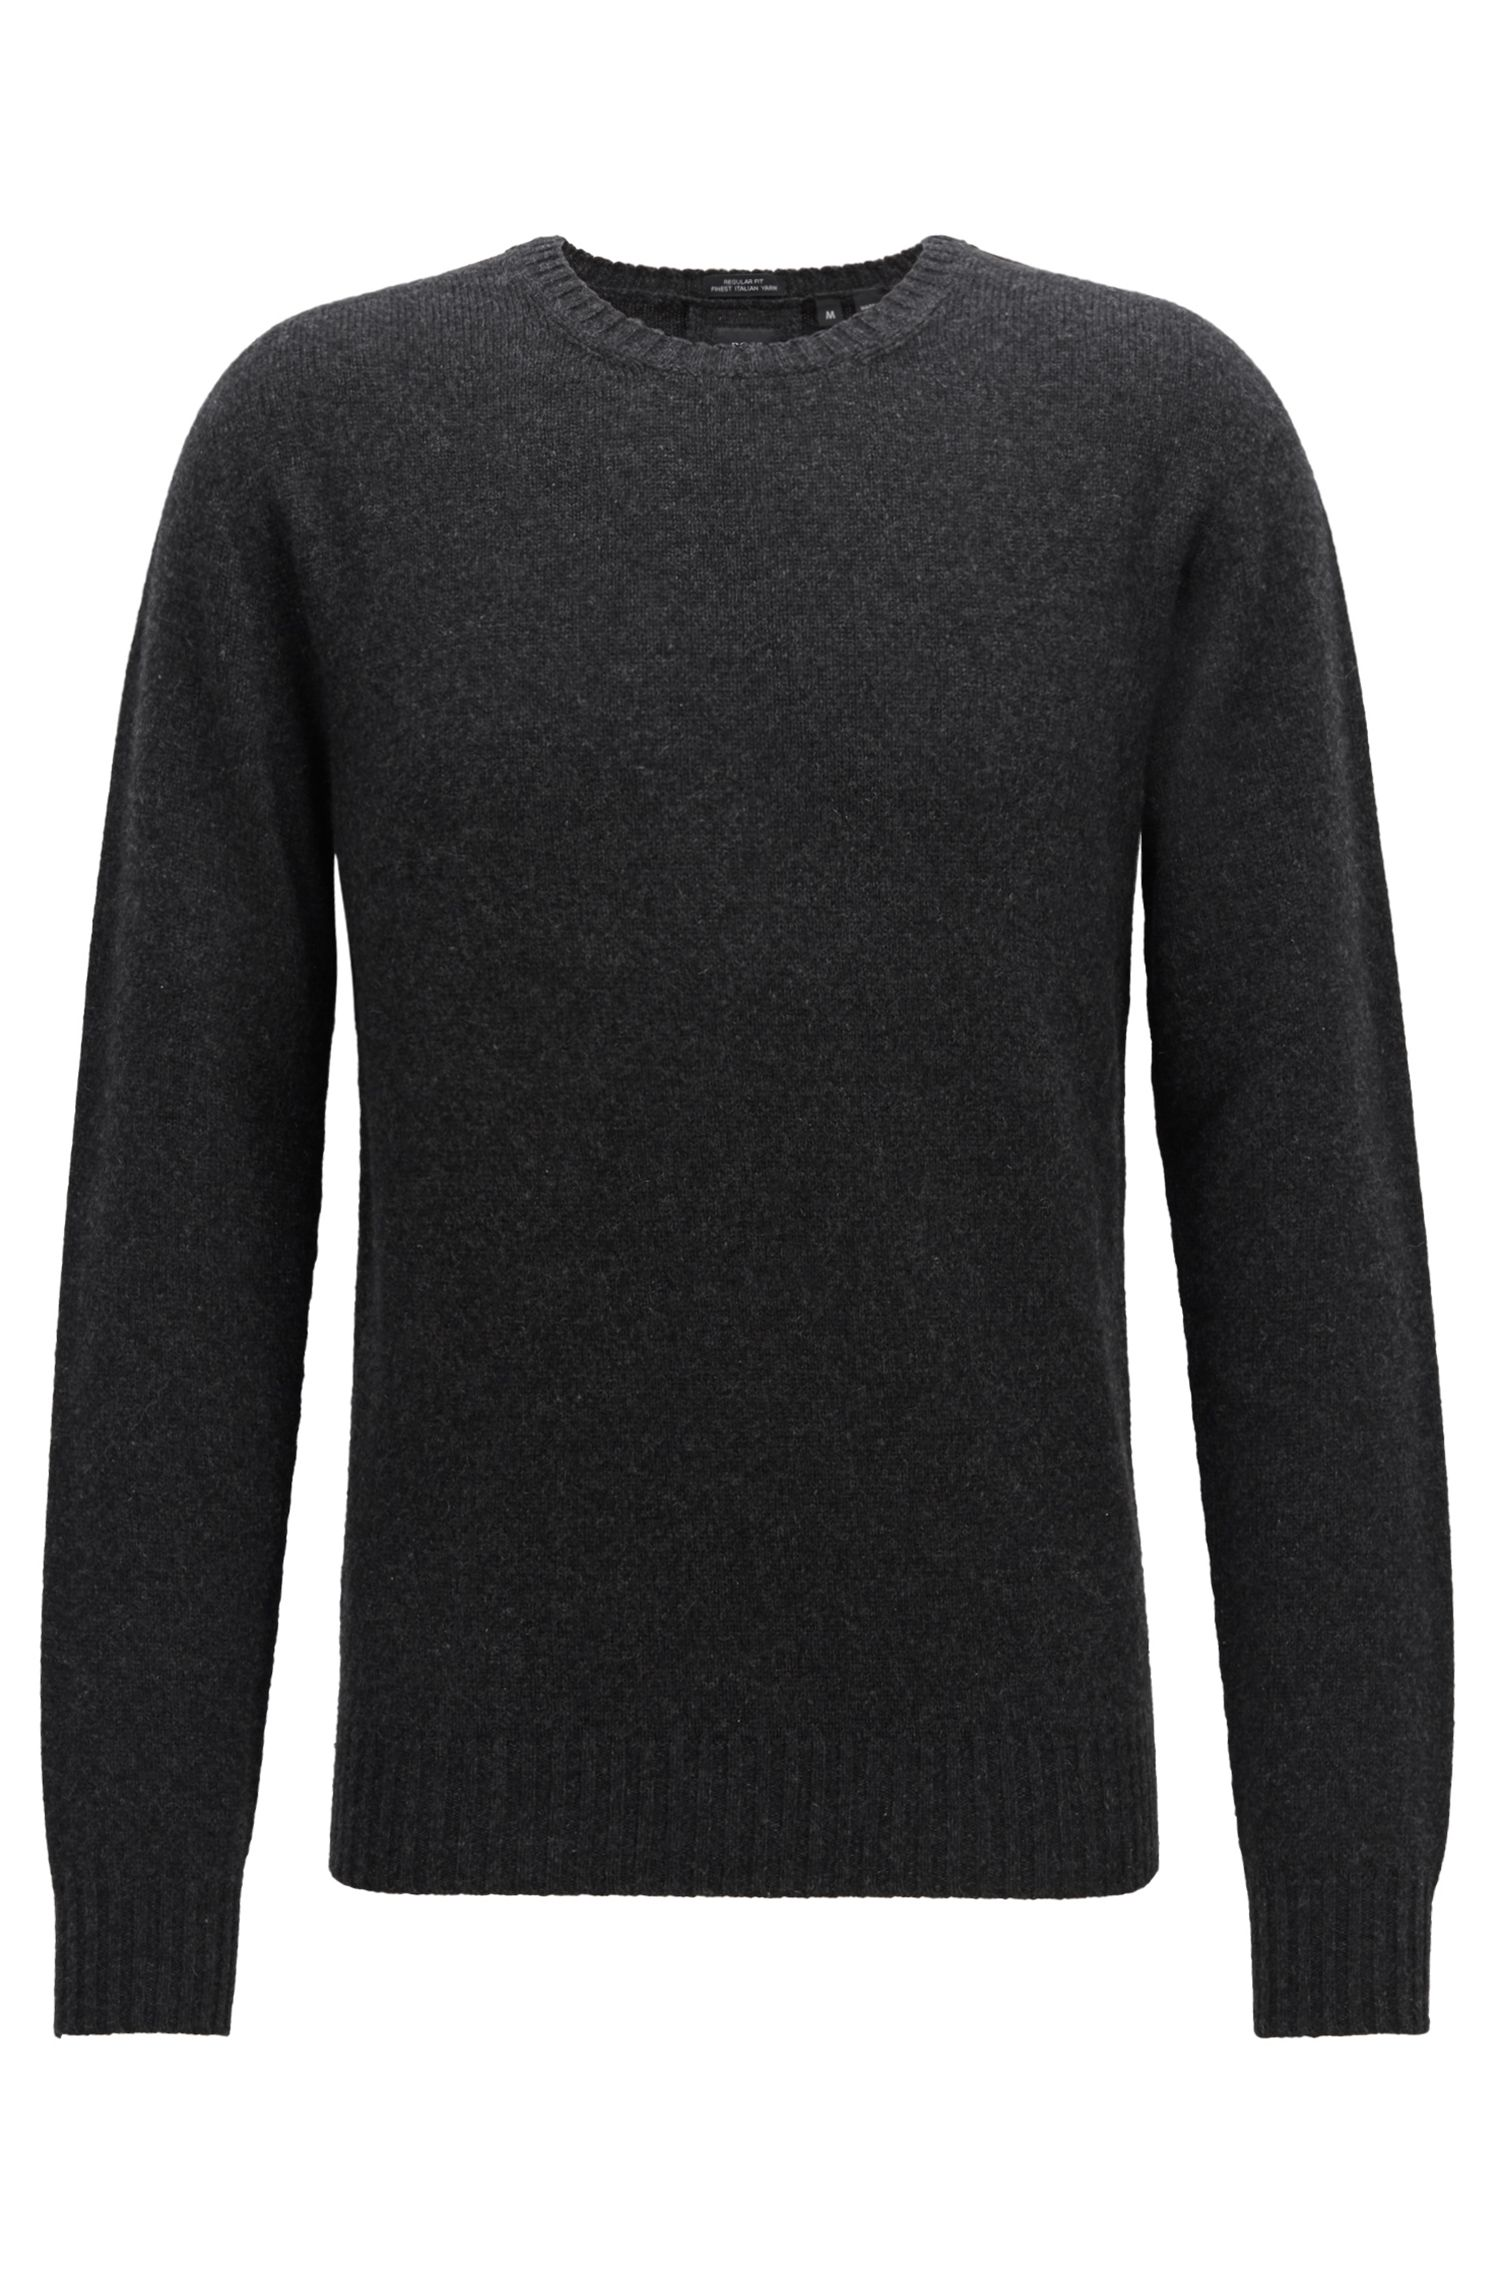 Knitted sweater in pure cashmere with seam-free construction